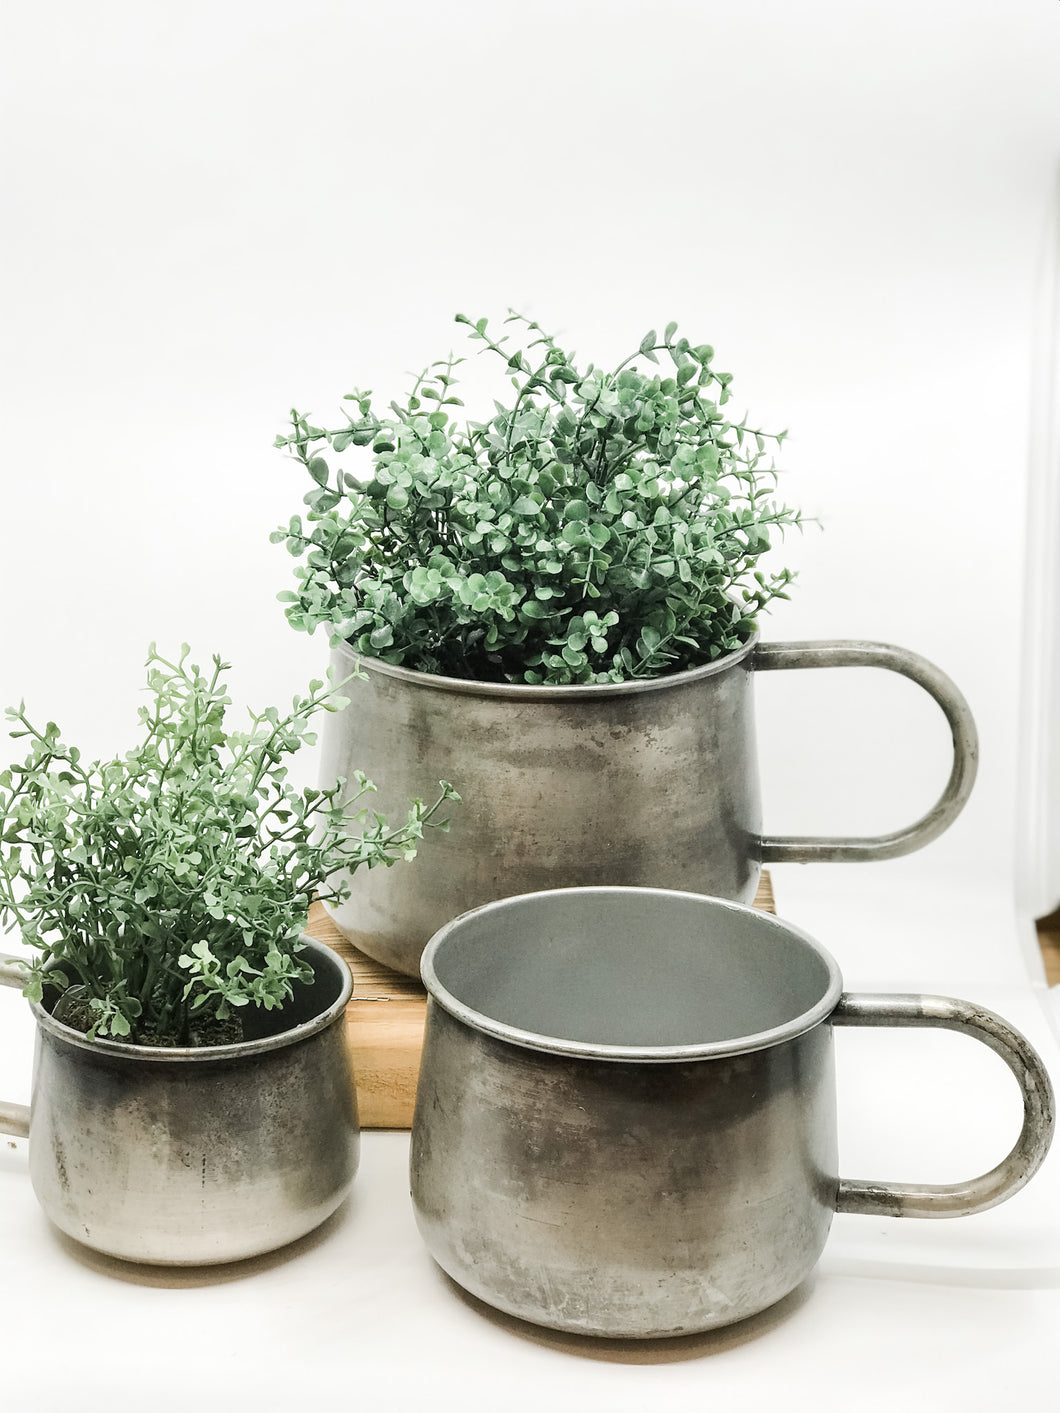 Patina Mug Planter - The Rustic Barn CT